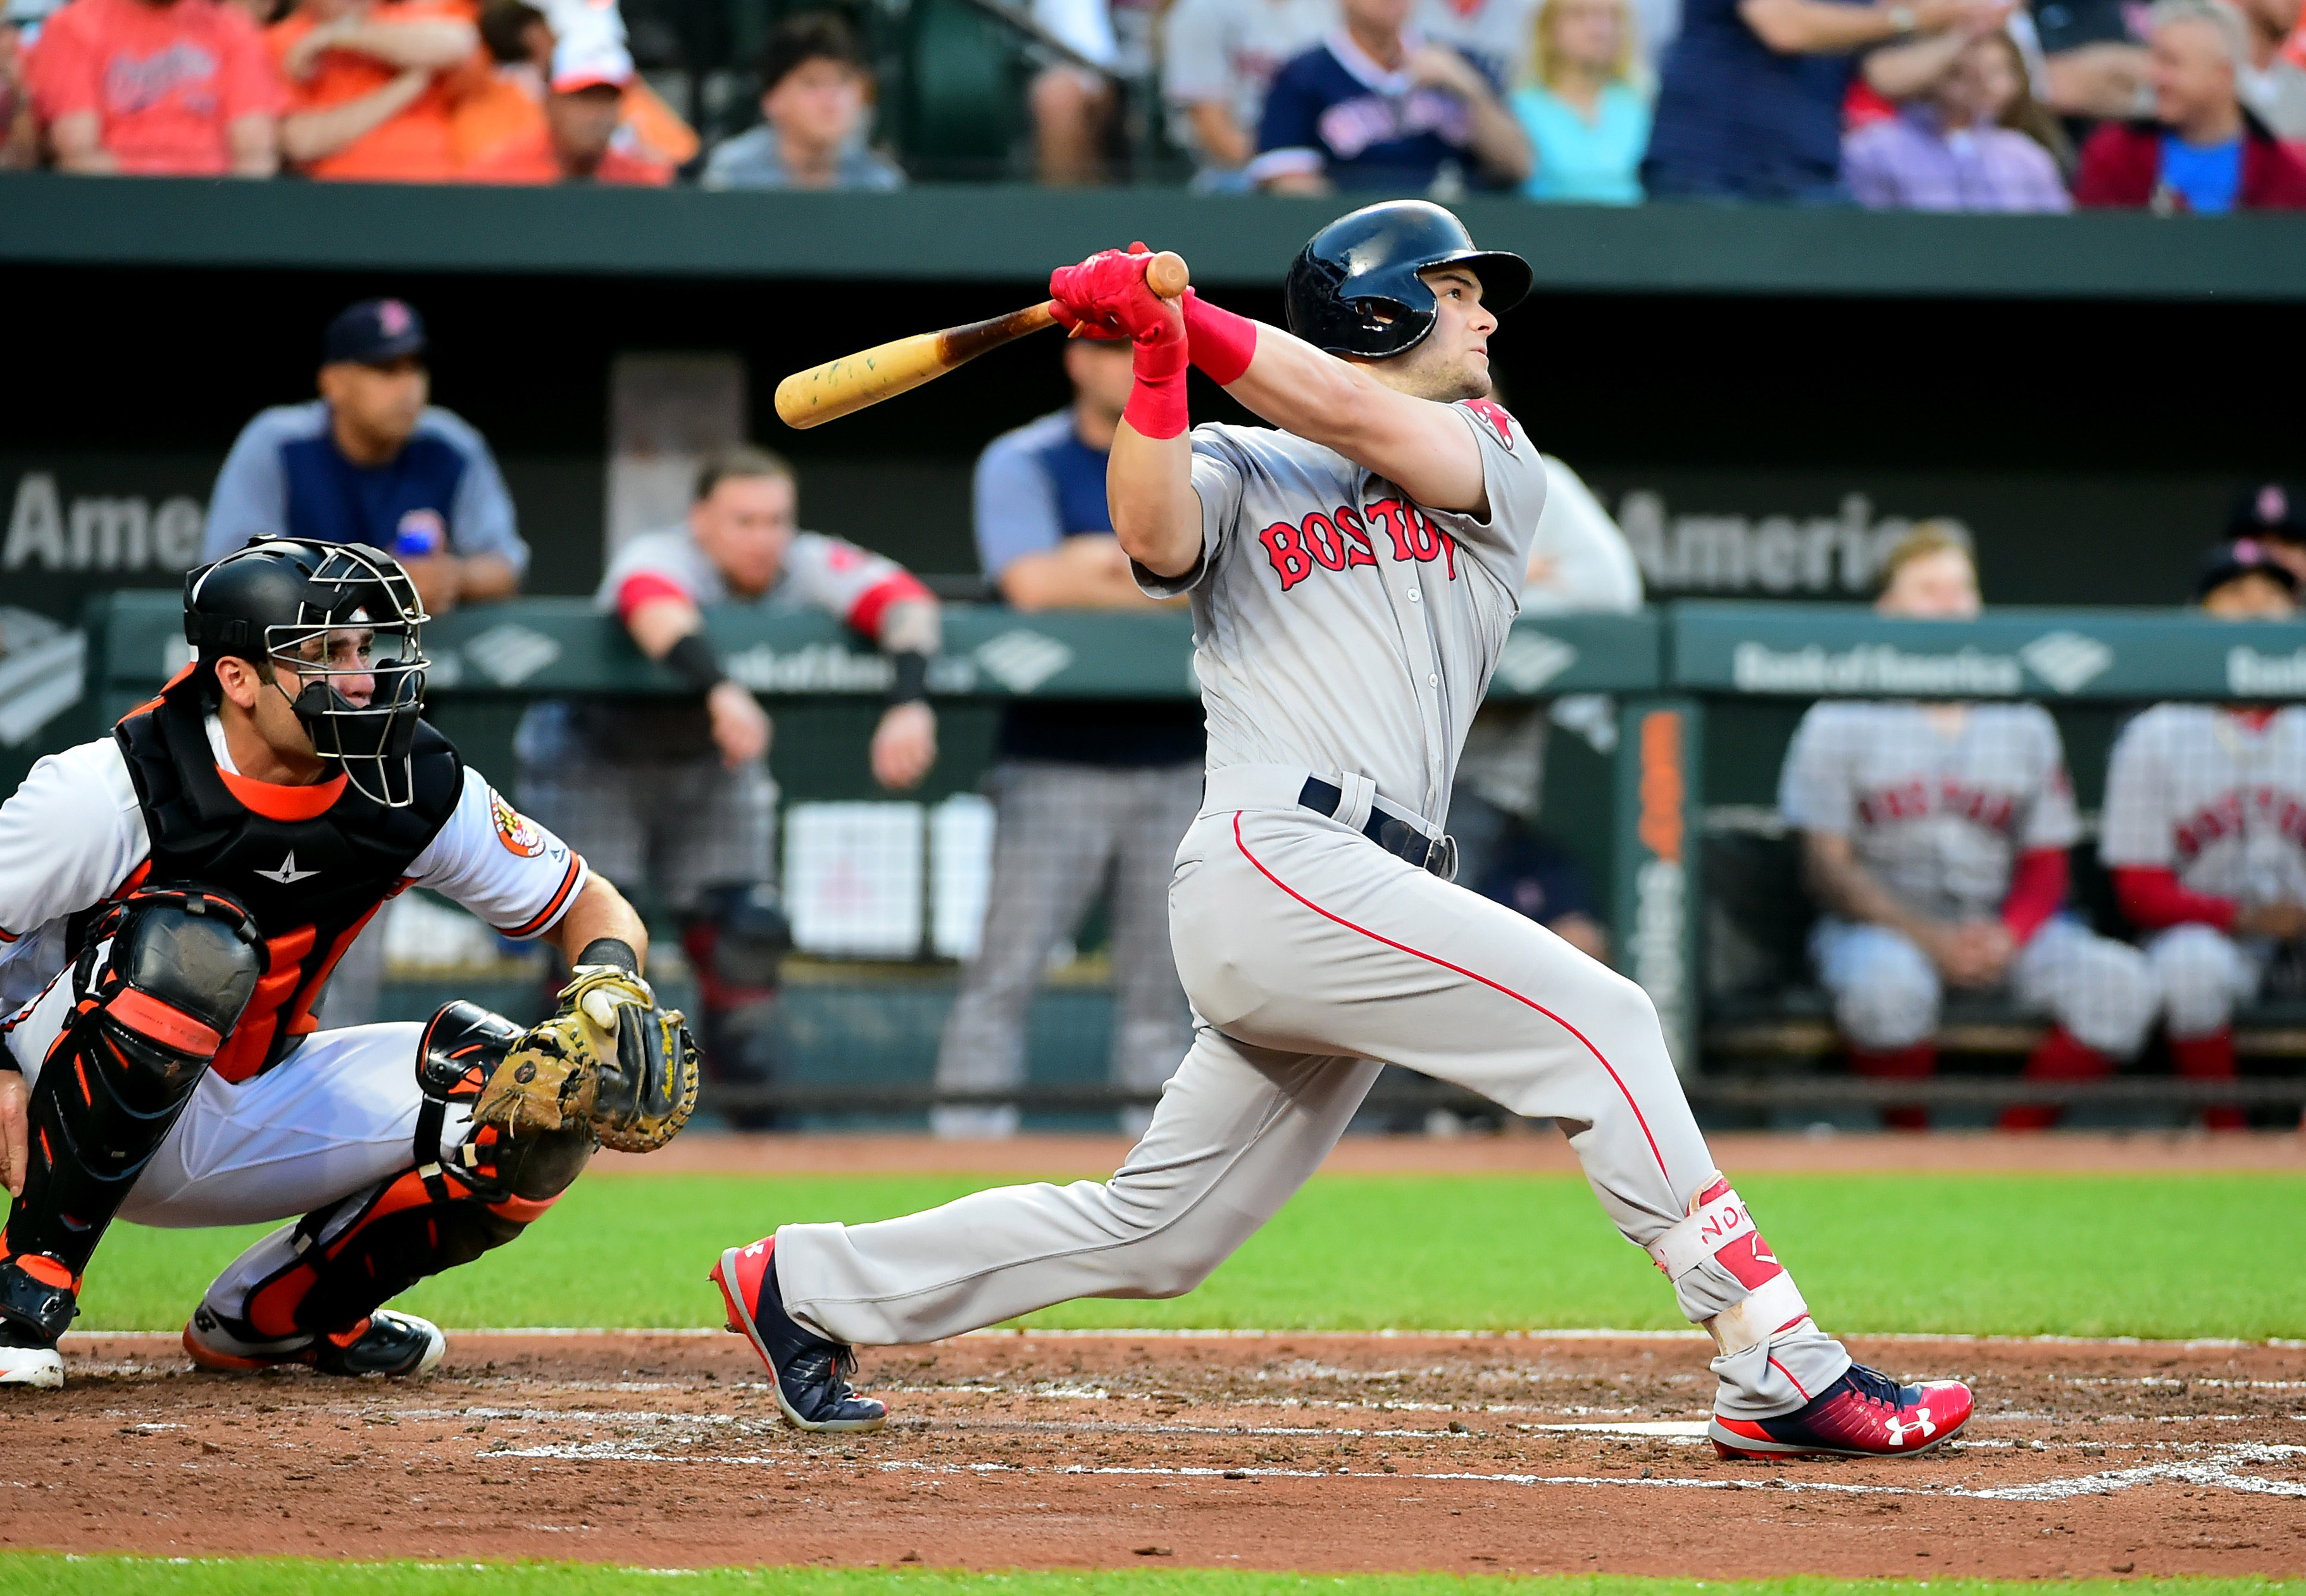 Outfield Disappointment: Andrew Benintendi - Baseball Prospectus